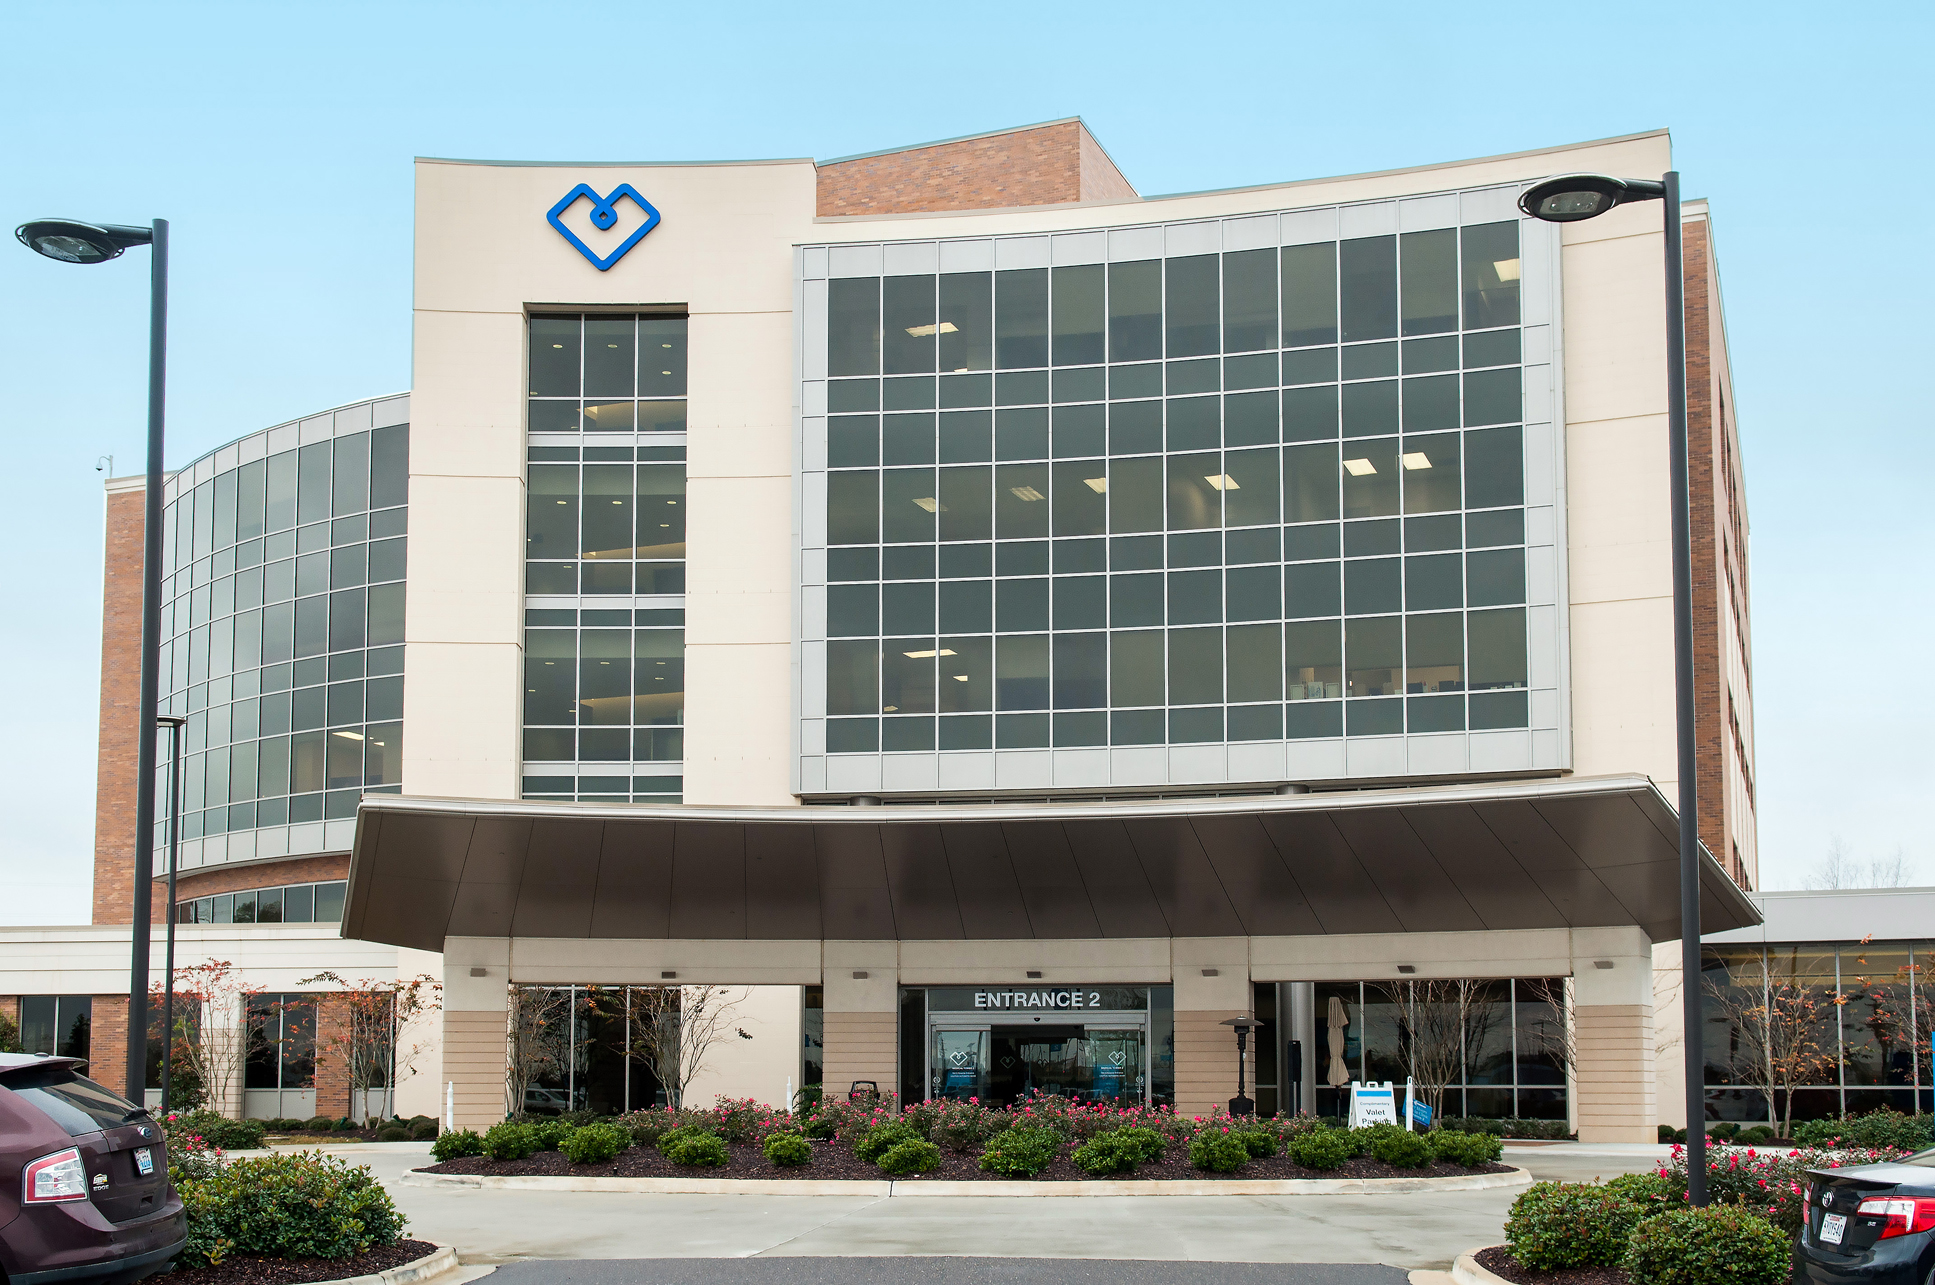 RARE RESOURCE: The General's Regional Burn Center is one of only 63 ABA-accredited centers nationwide—and the only verified facility of its kind in a 300-mile radius. (Photo by Don Kadair)